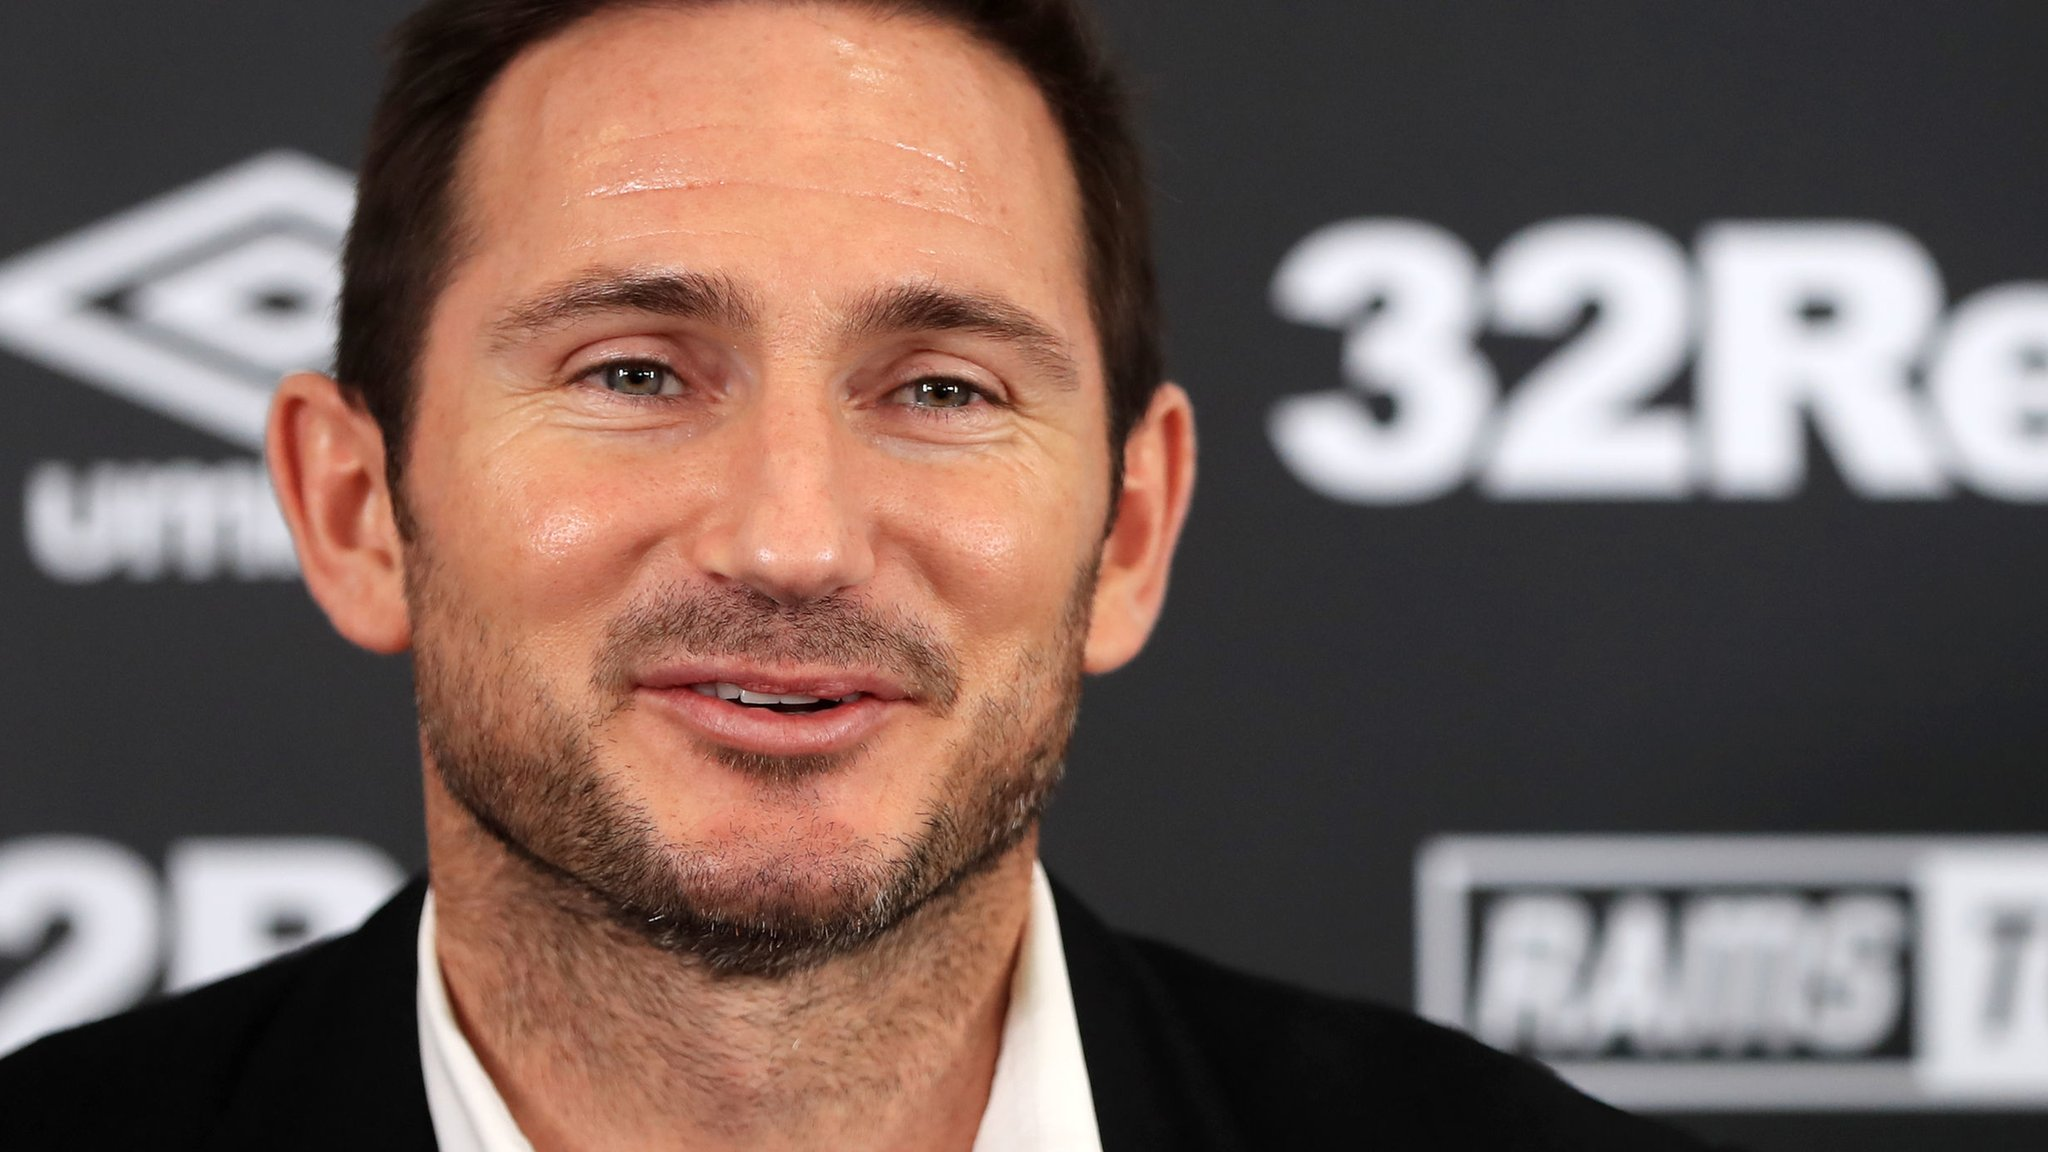 Lampard's Derby start season at Reading as EFL fixtures announced